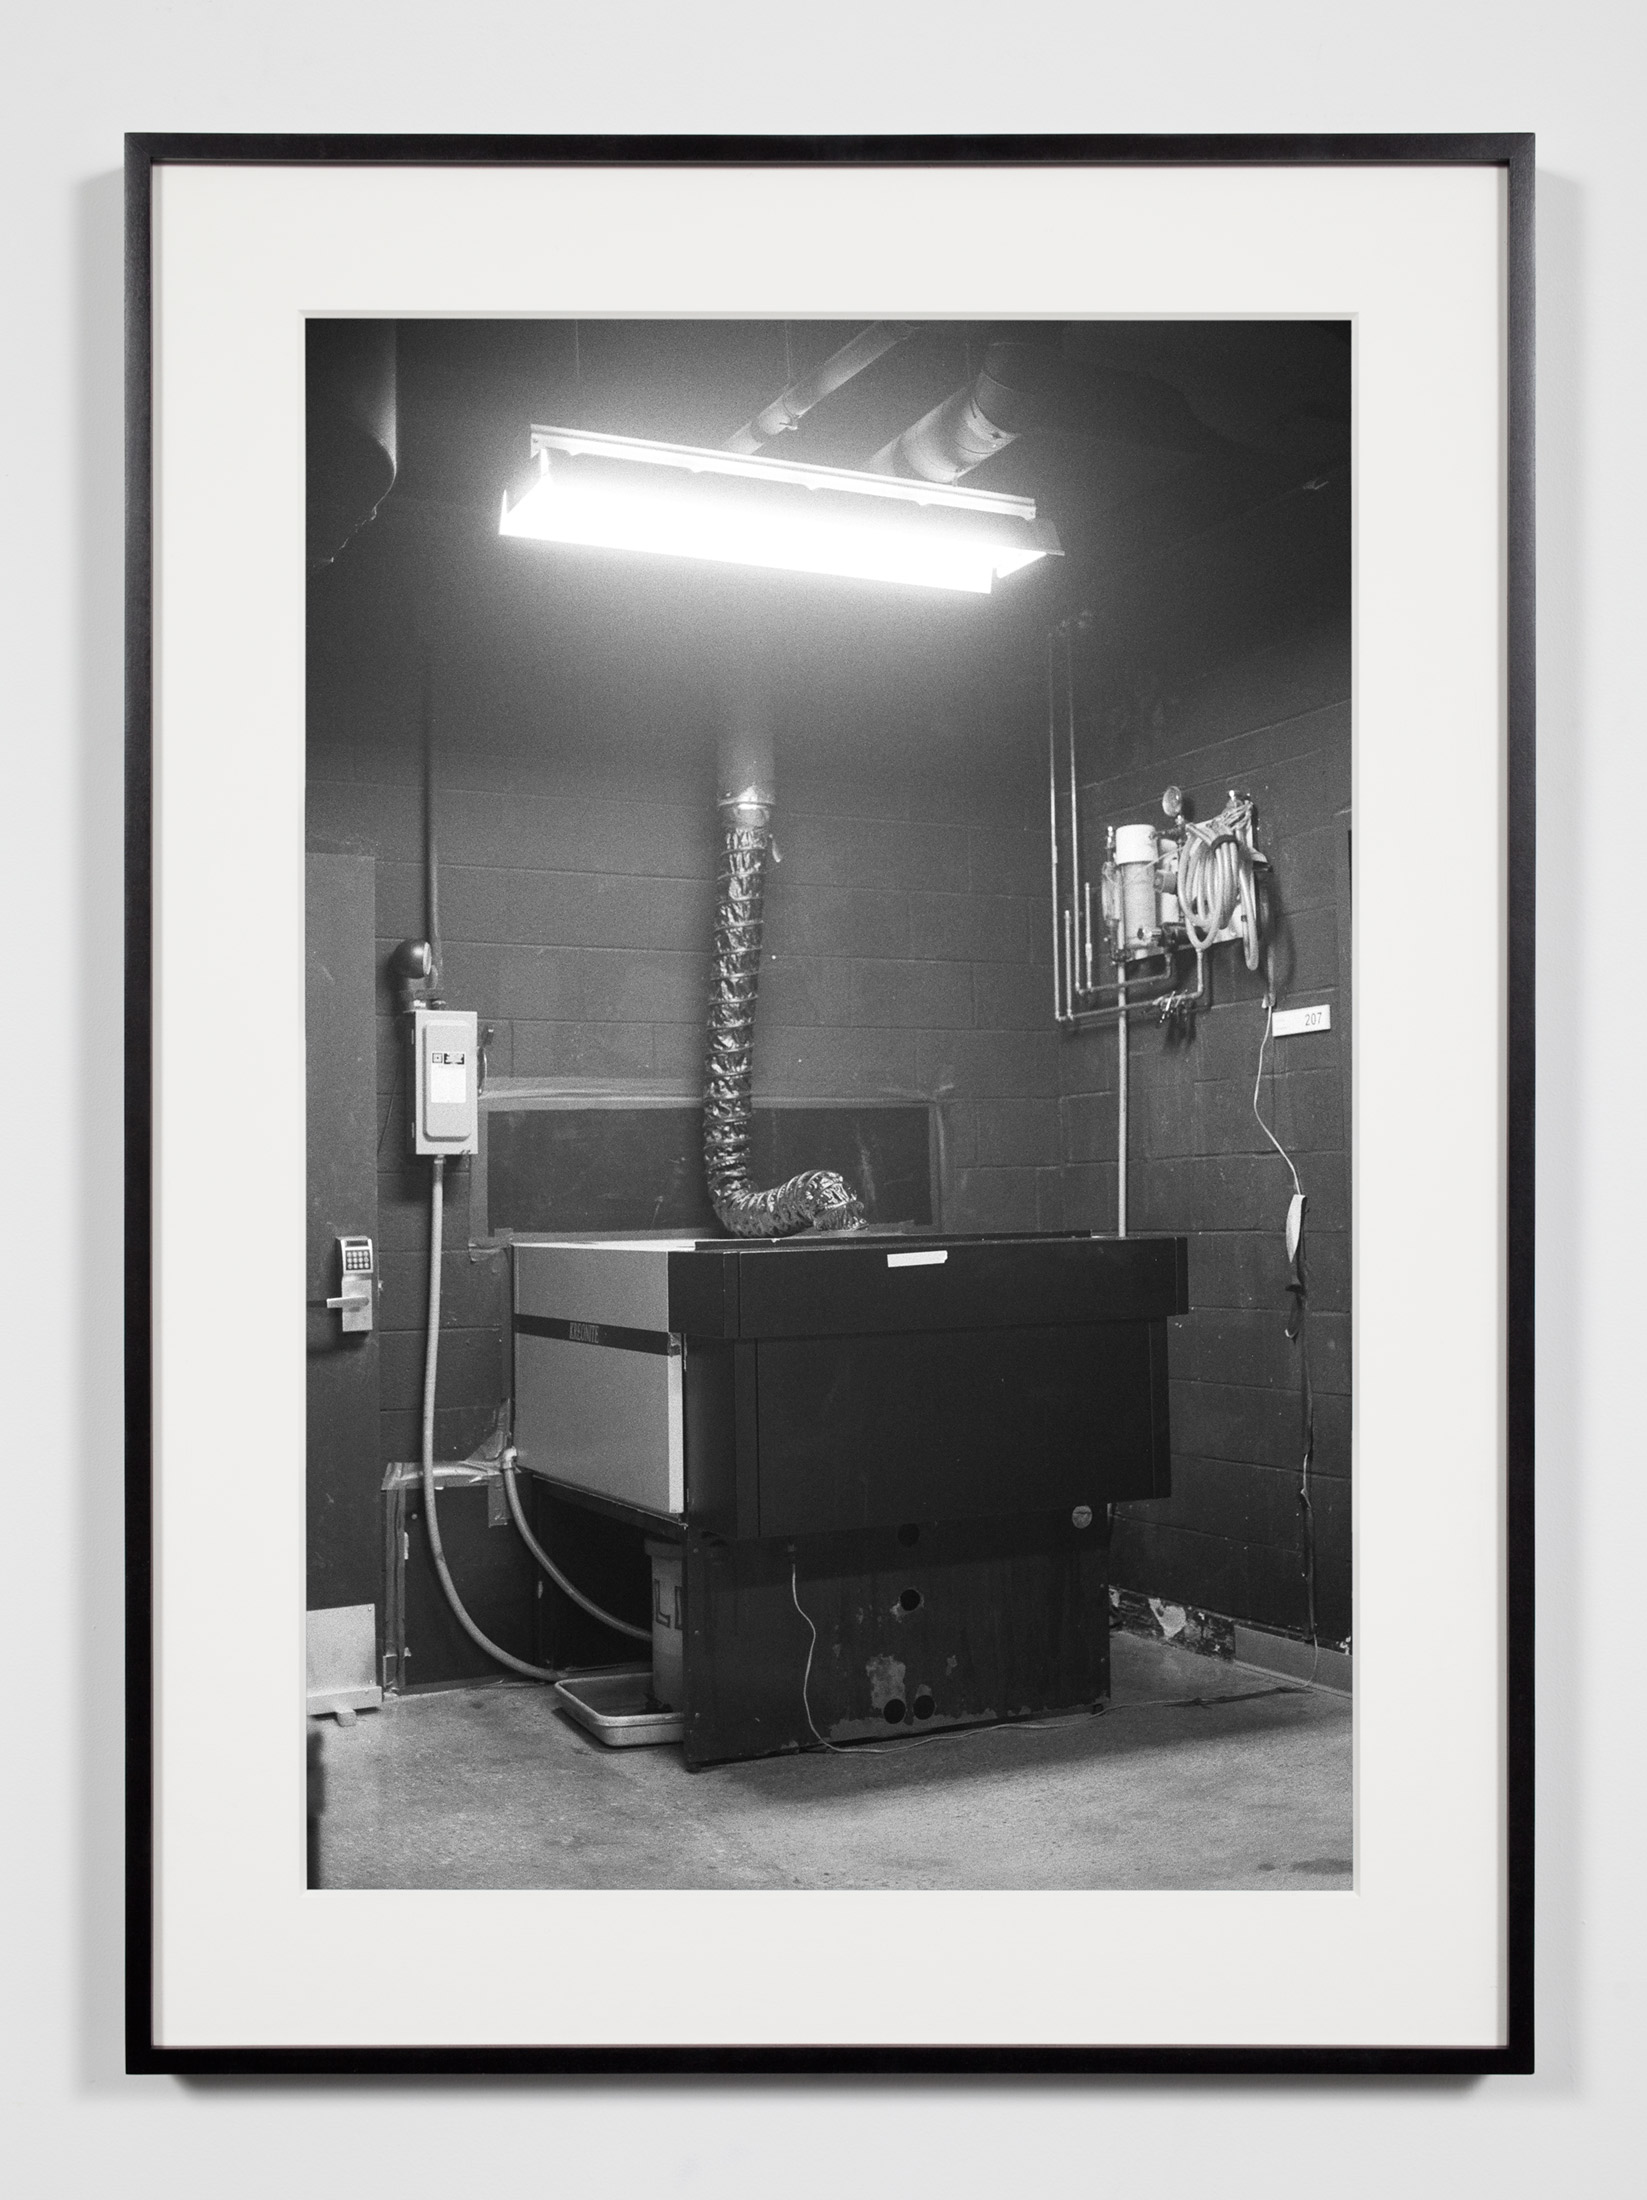 College Darkroom, Color Photographic Processor, Chicago, Illinois, August 21, 2008    2011   Epson Ultrachrome K3 archival ink jet print on Hahnemühle Photo Rag paper  36 3/8 x 26 3/8 inches   Industrial Portraits, 2008–